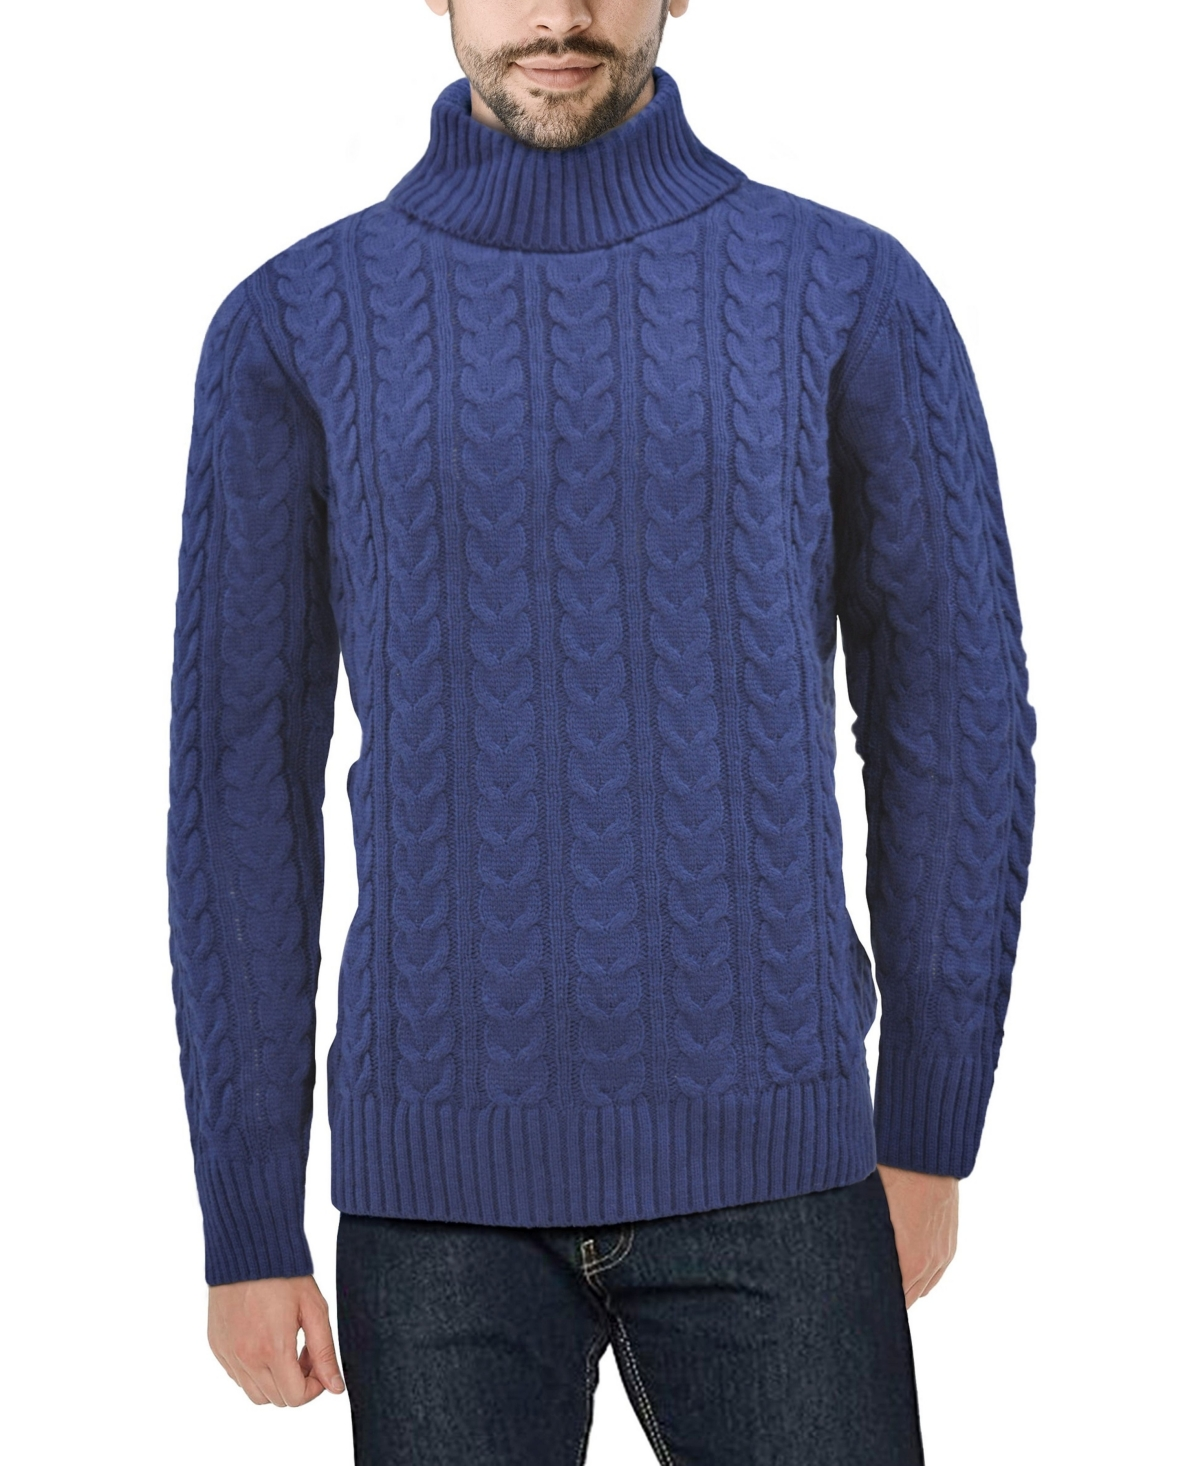 60s 70s Men's Jackets & Sweaters X-Ray Mens Cable Knit Roll Neck Sweater $48.00 AT vintagedancer.com